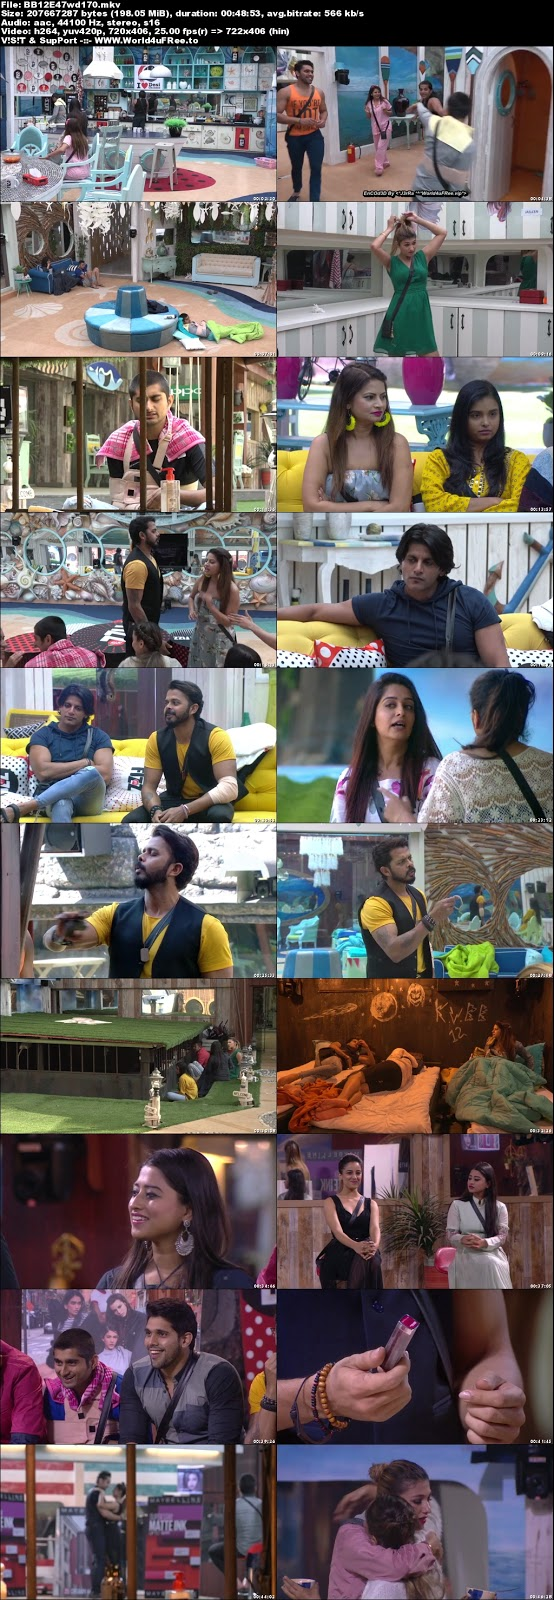 Bigg Boss 12 Episode 47 02 November 2018 WEBRip 480p 170Mb x264 world4ufree.vip tv show Episode 47 02 November 2018 world4ufree.vip 200mb 250mb 300mb compressed small size free download or watch online at world4ufree.vip